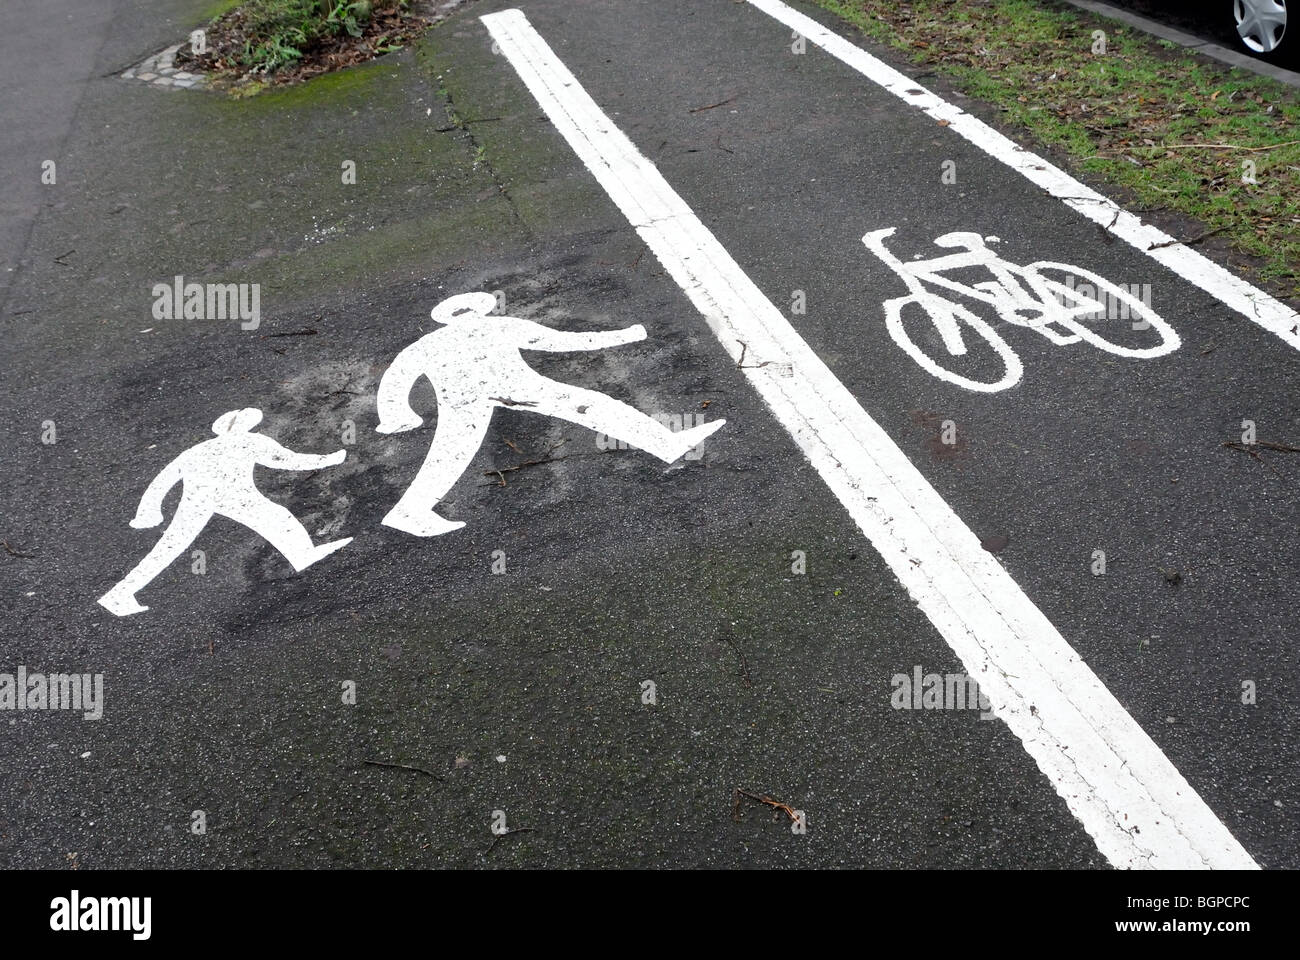 Pedestrian road marking cycle lane - Stock Image